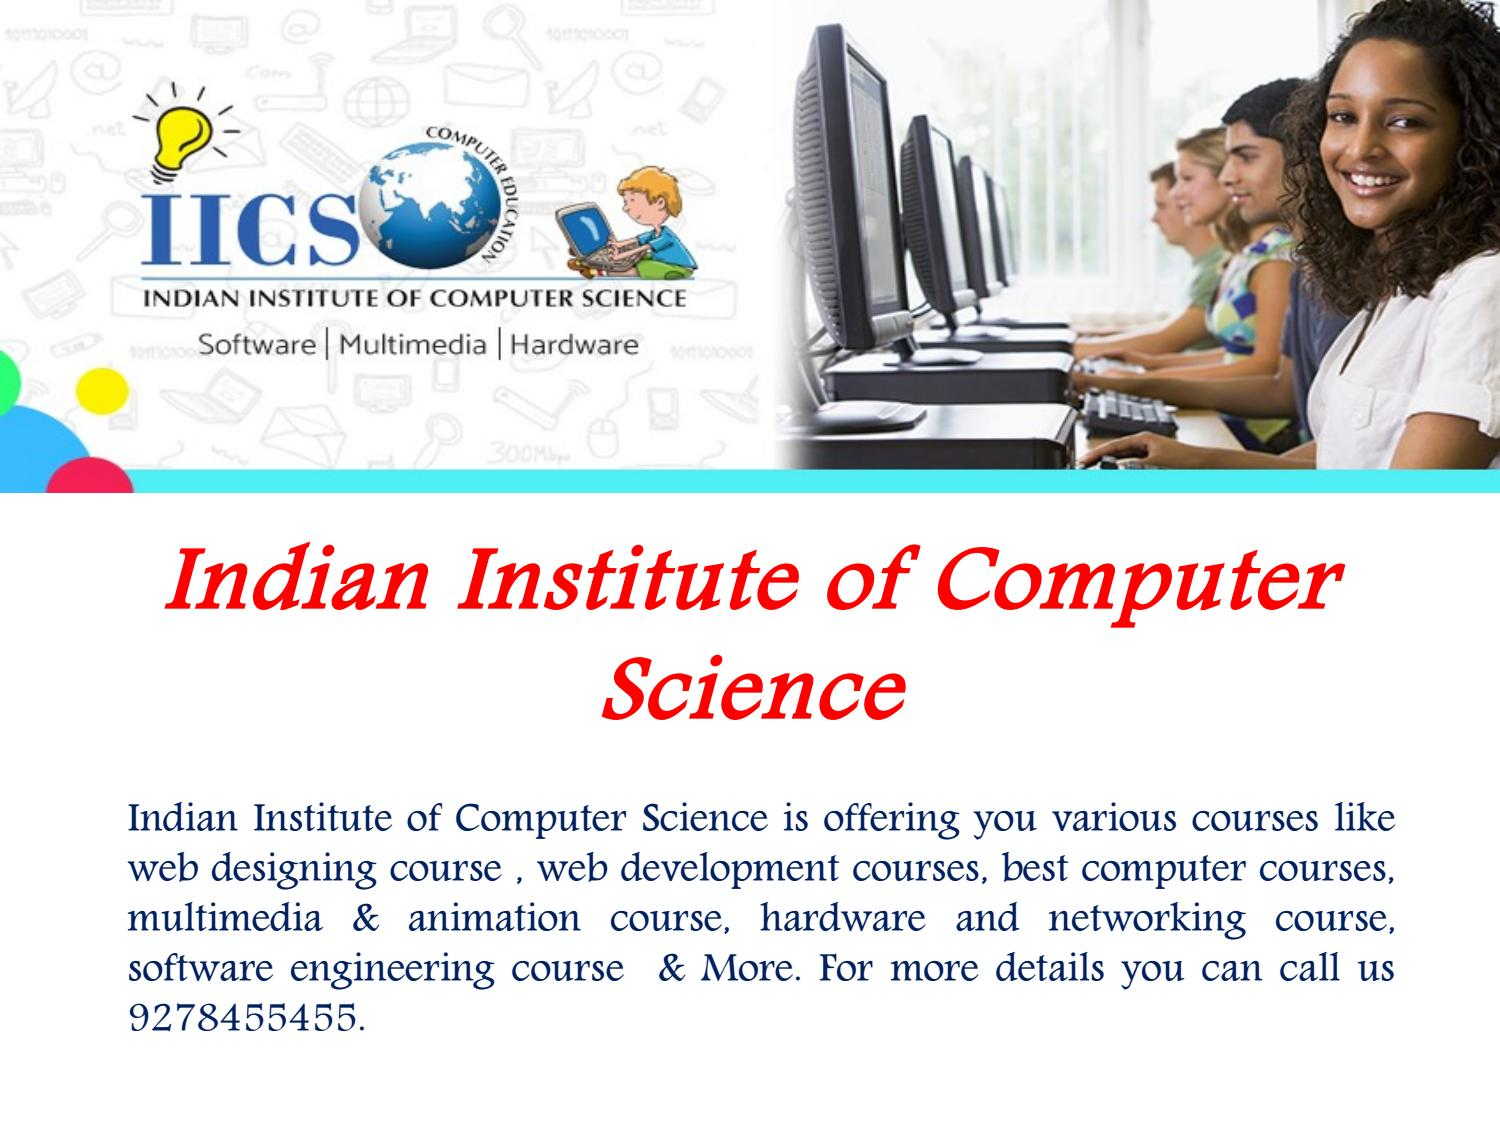 Affordable Web Design Courses In Delhi With Iics India By Iicsindia Issuu